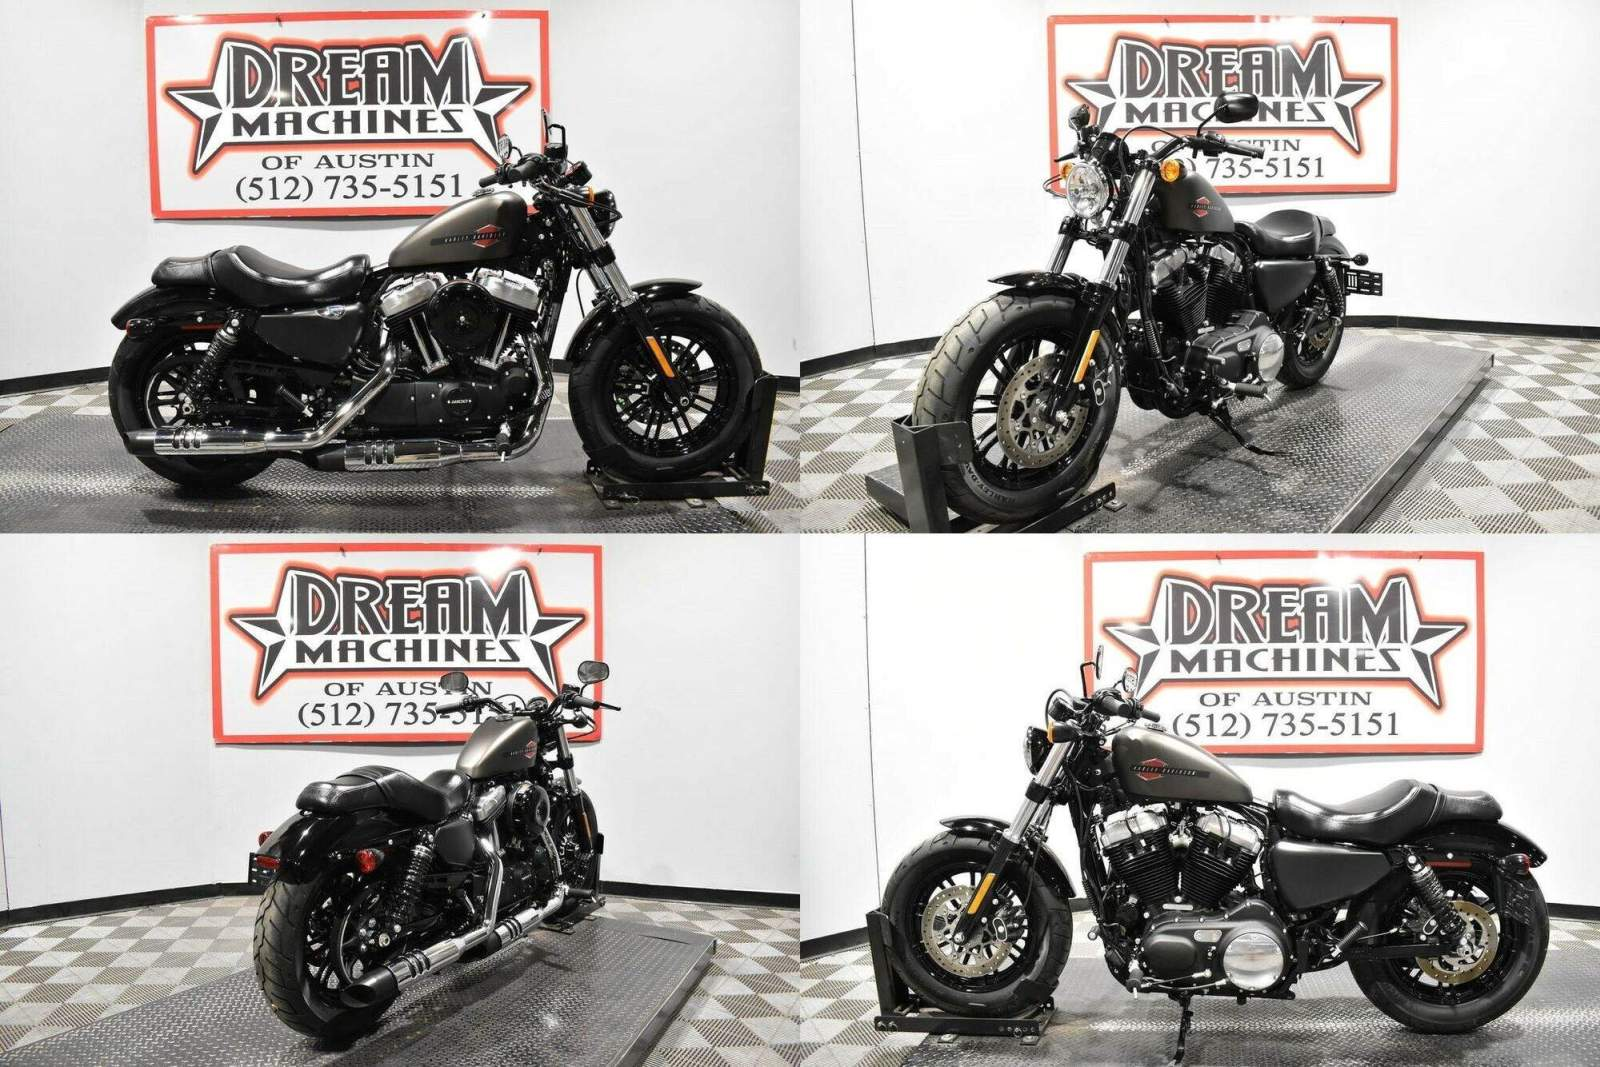 2020 Harley-Davidson XL1200X - Sportster Forty-Eight Gray used for sale craigslist